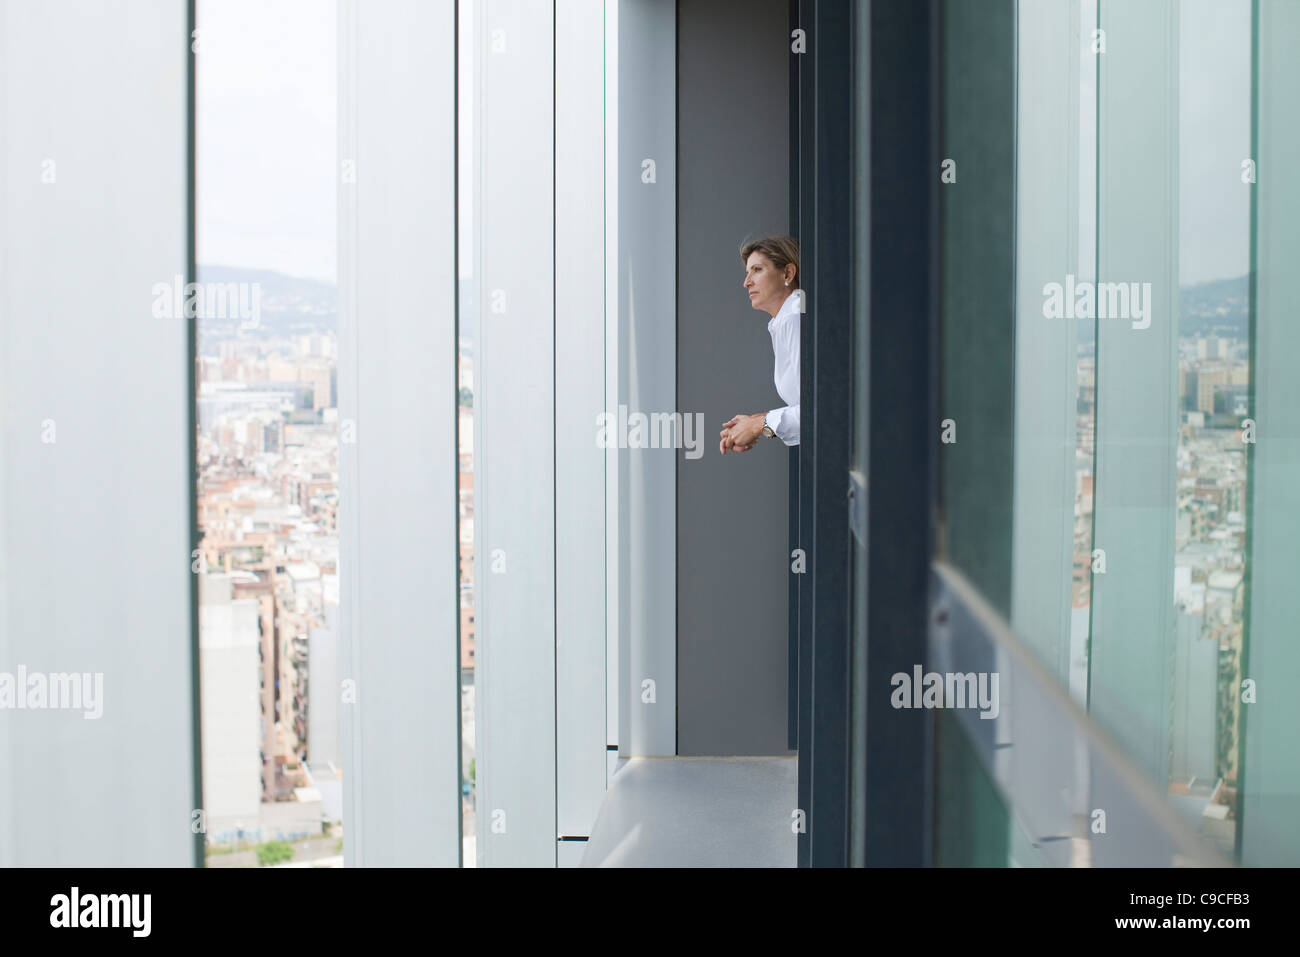 Woman looking out of office window at view of city - Stock Image